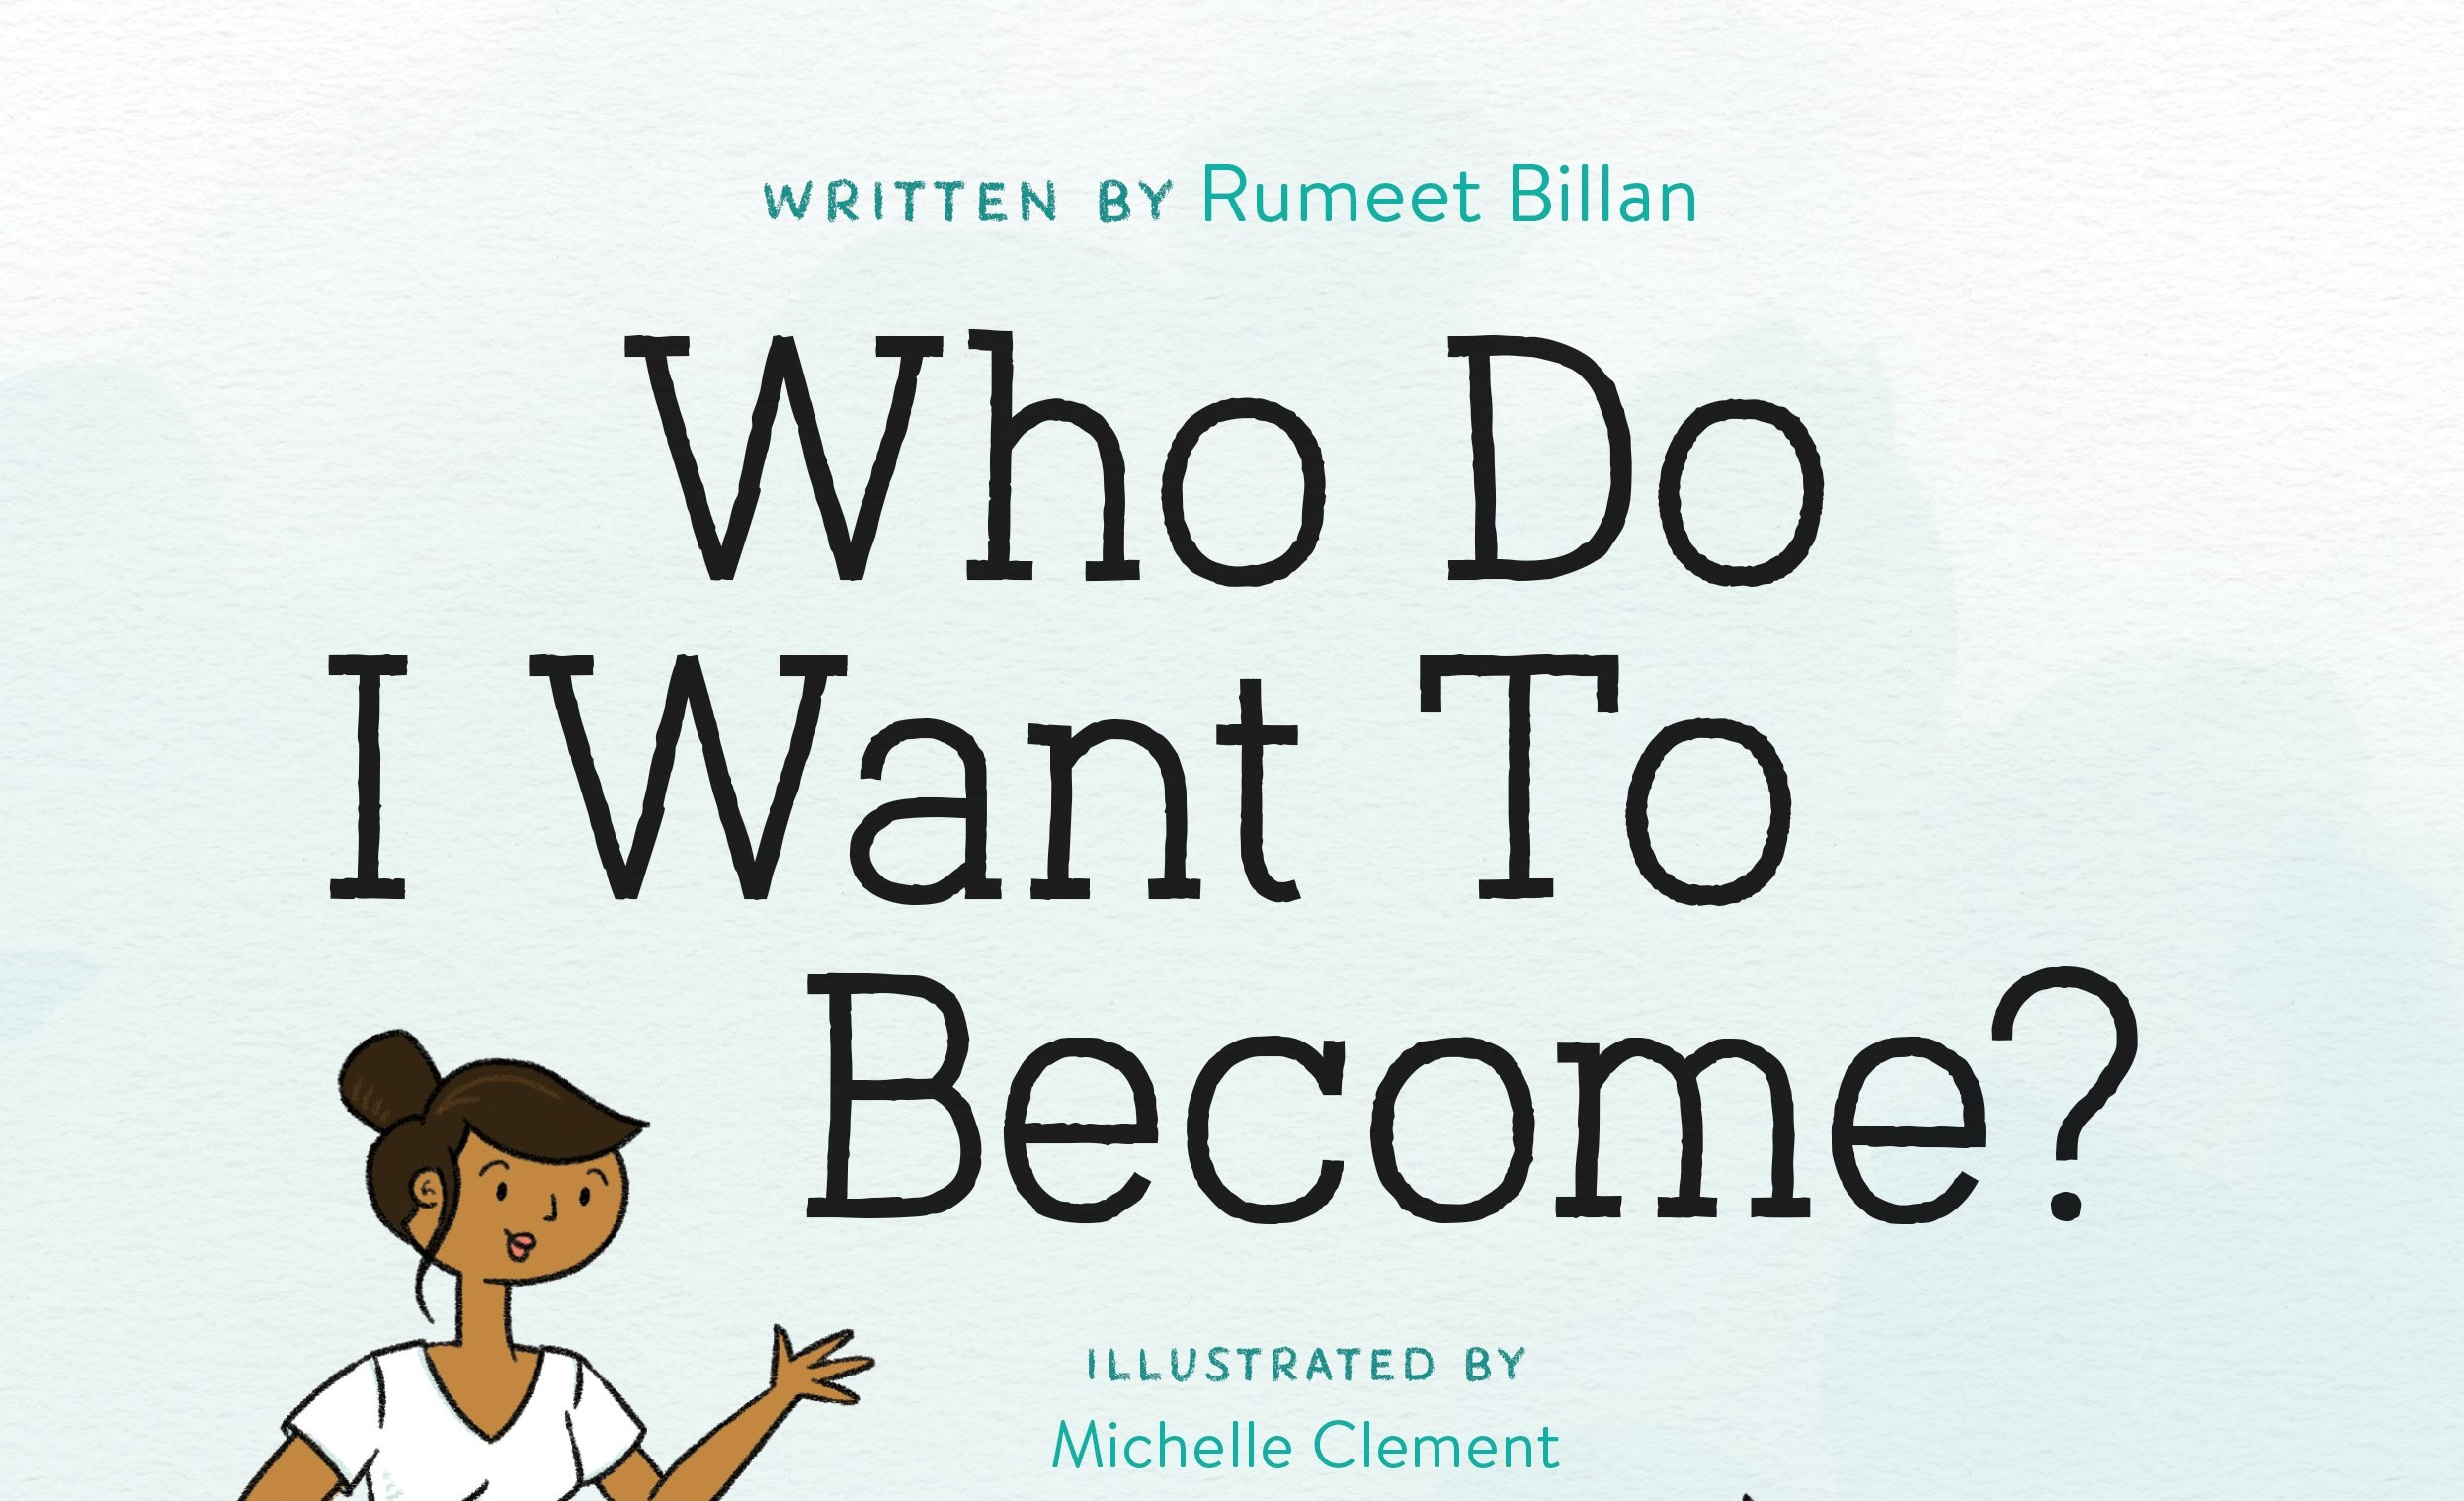 Book Review: Who Do I Want To Become? By: Dr. Rumeet Billan